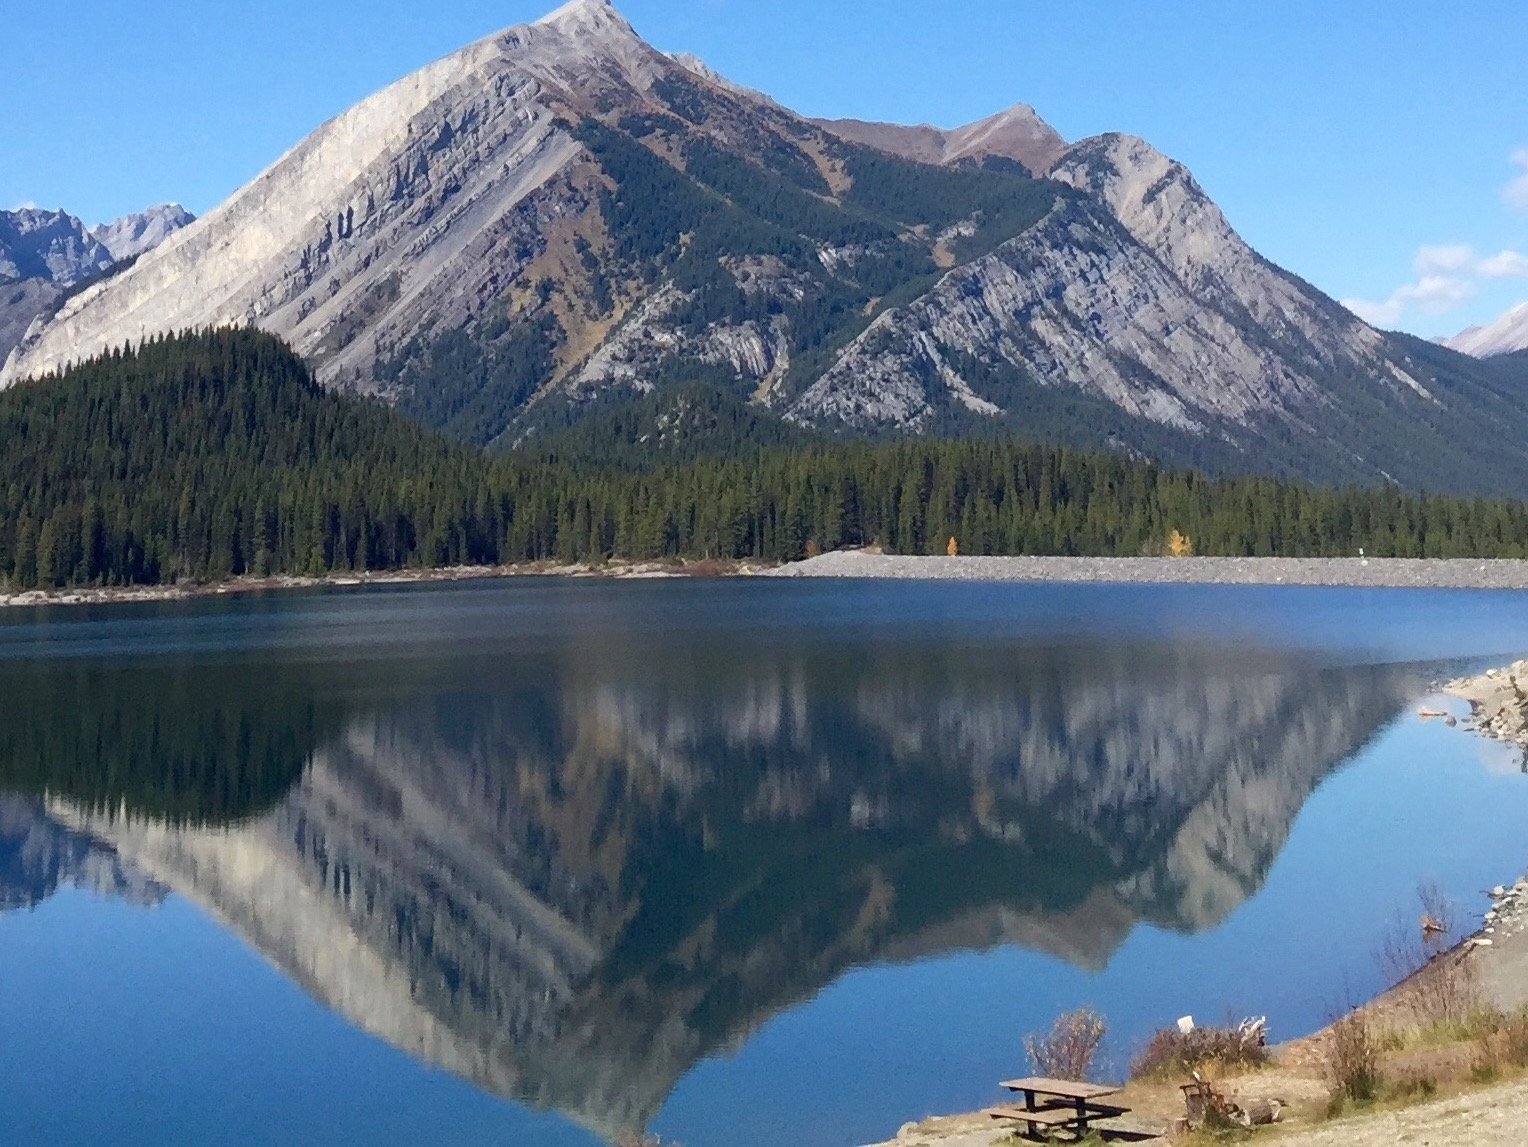 Mount Indefatigable – Kananaskis